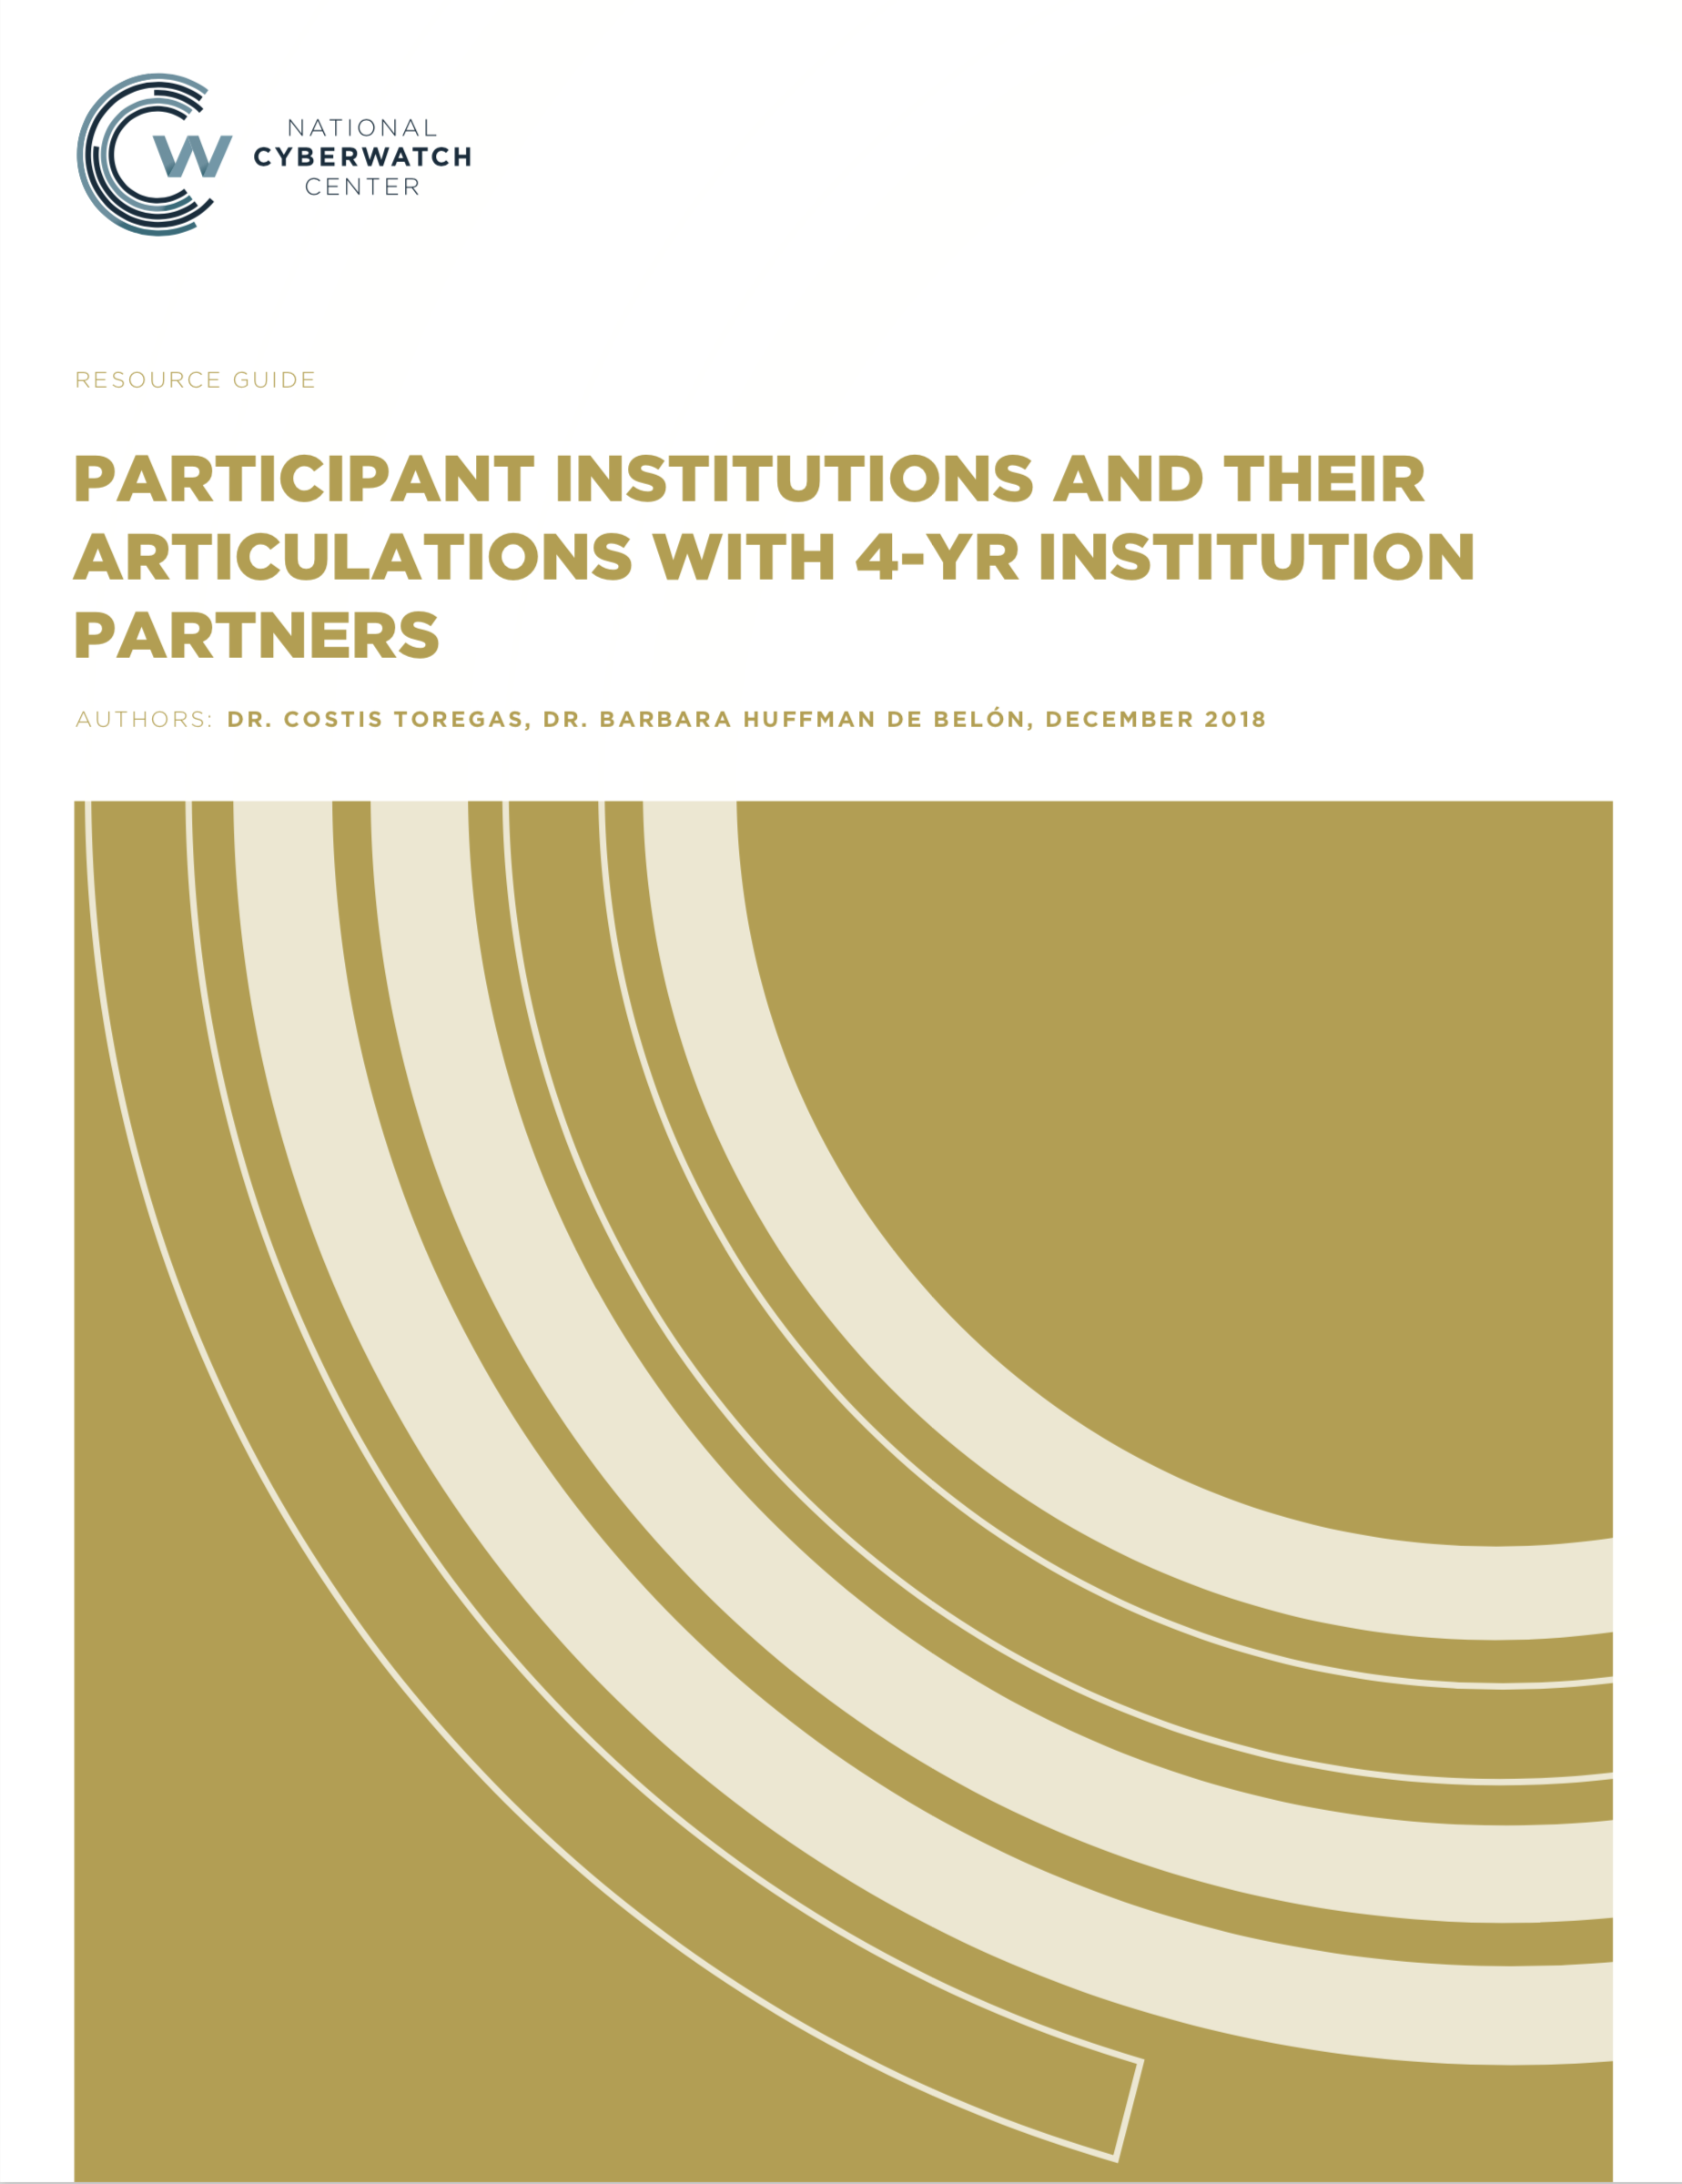 Participant Institutions and their Articulations with 4-yr institution partners